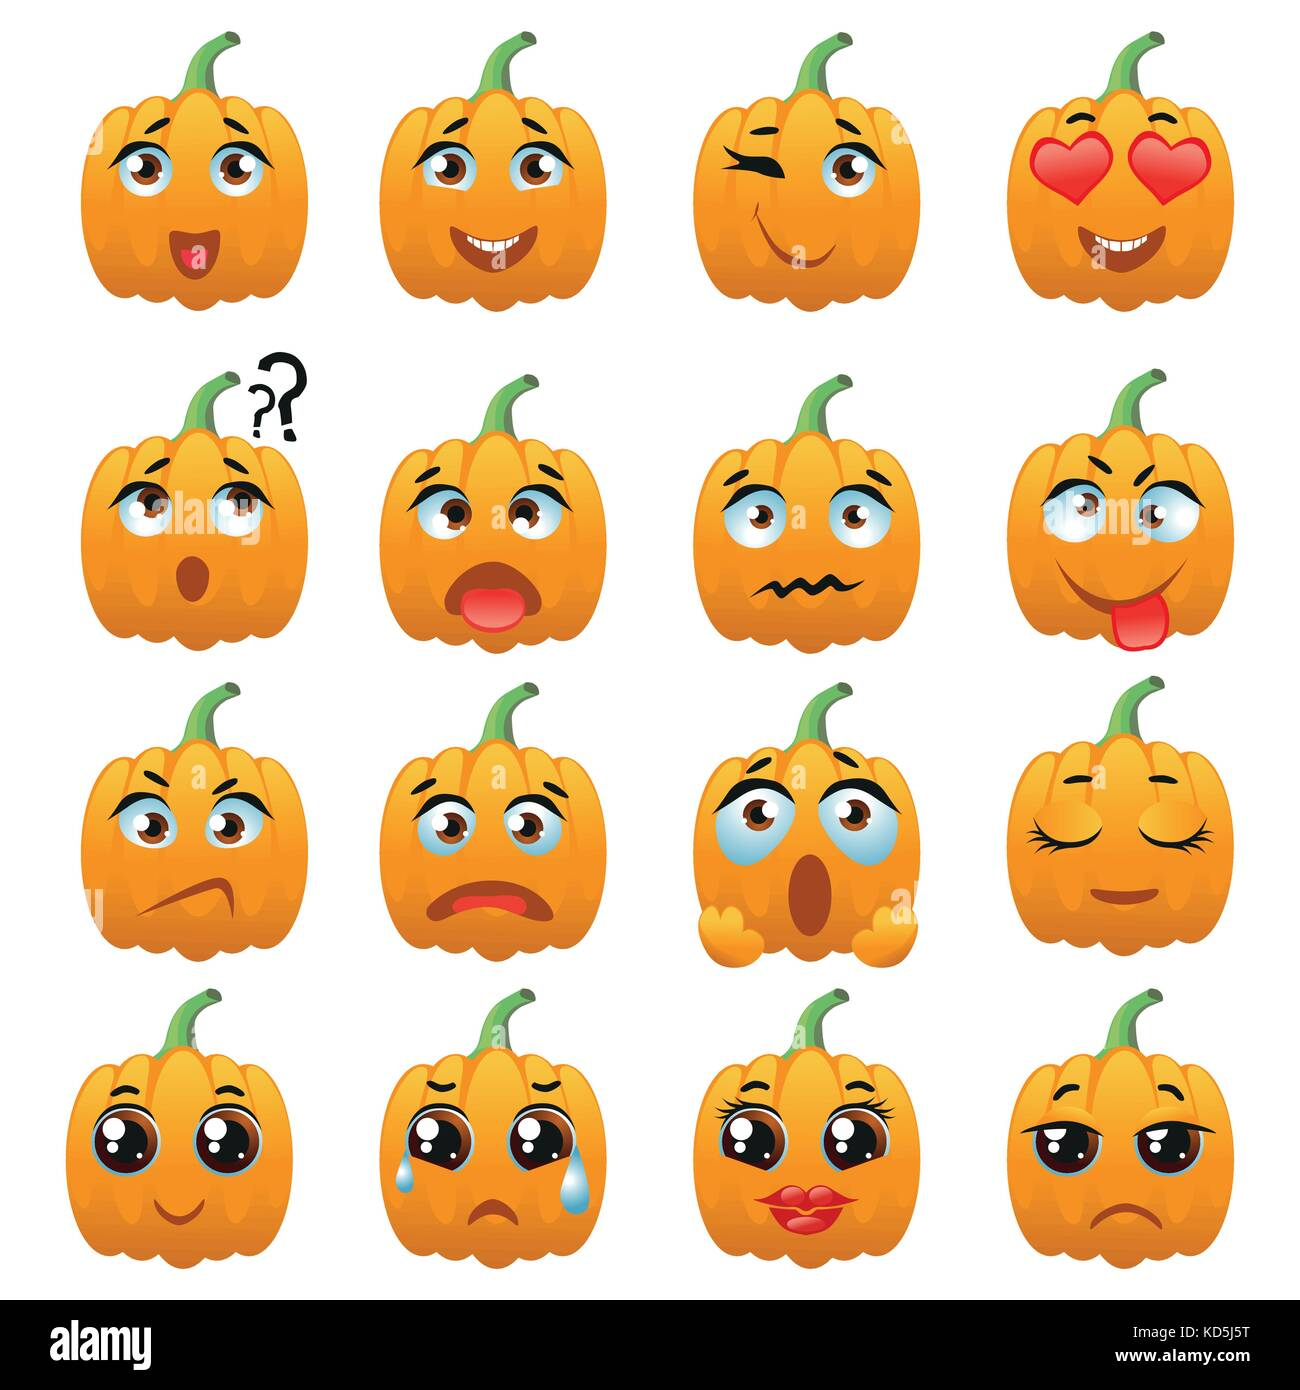 Pumpkin Halloween Vector Vectors Stock Photos Amp Pumpkin Halloween Vector Vectors Stock Images